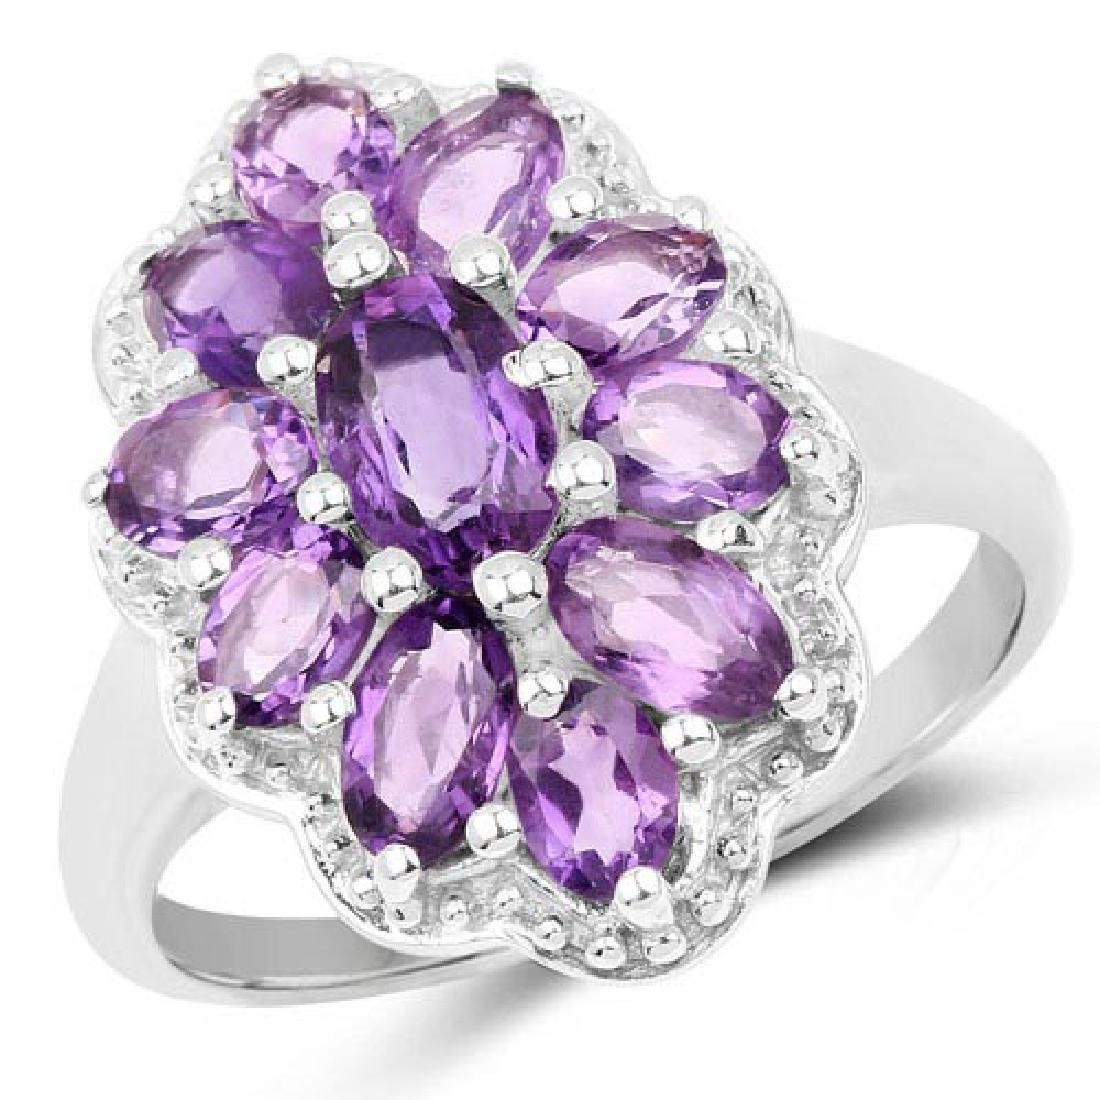 2.23 Carat Genuine Amethyst .925 Sterling Silver Ring